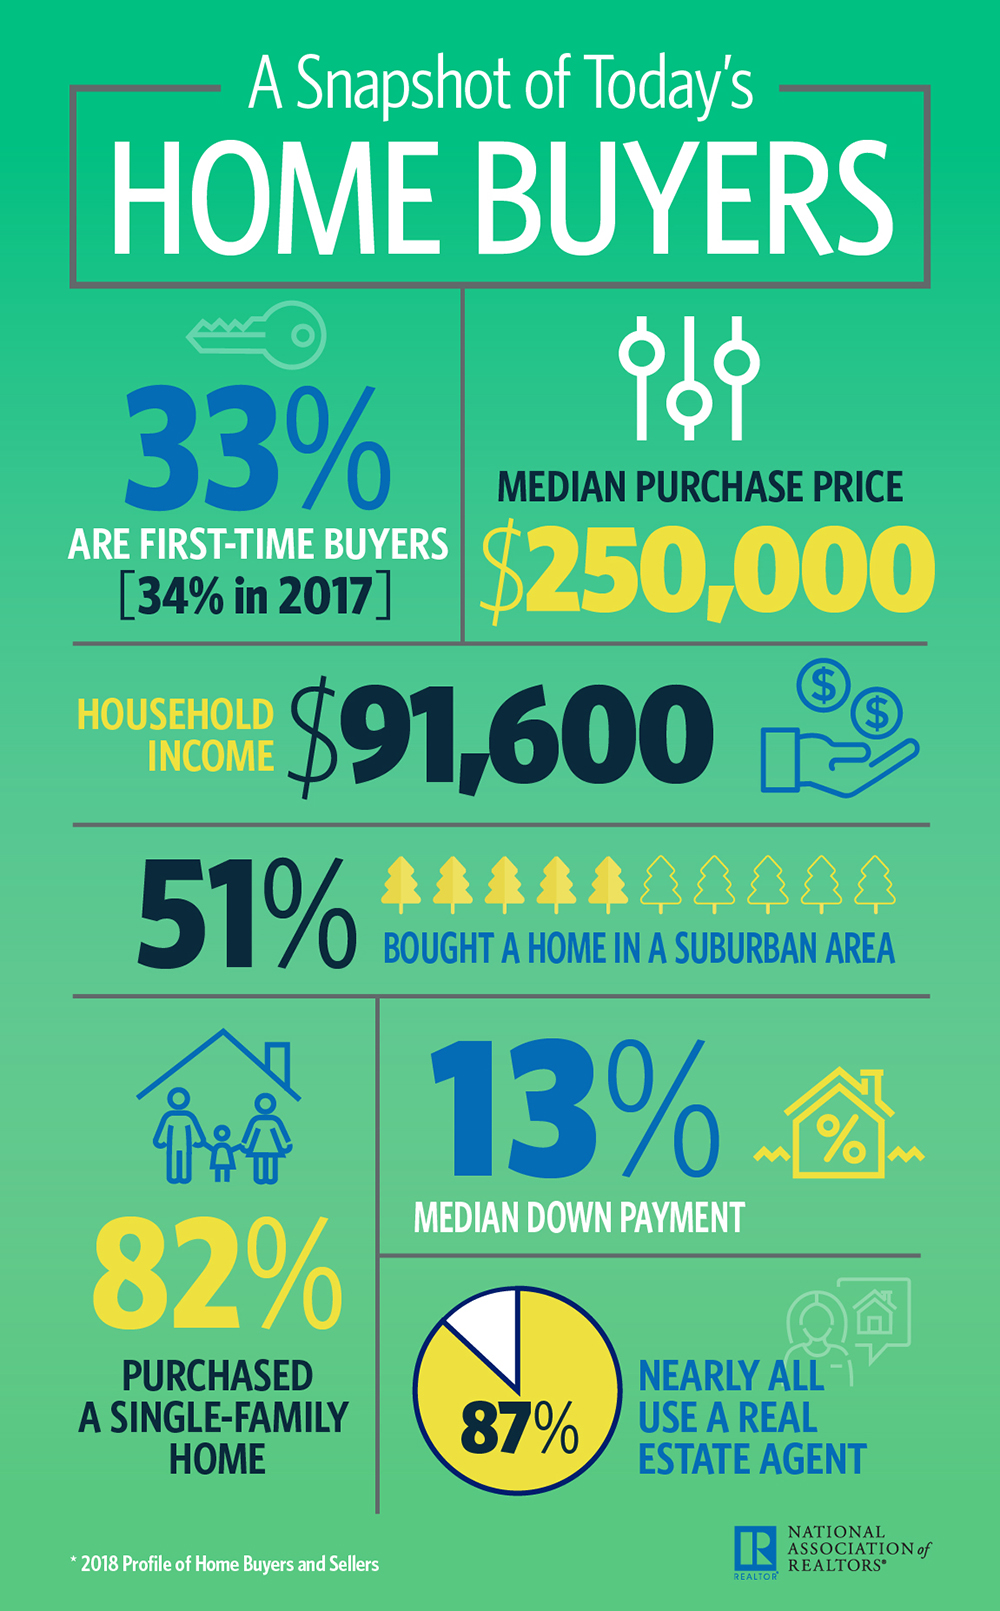 2018-home-buyers-infographic-10-29-2018-